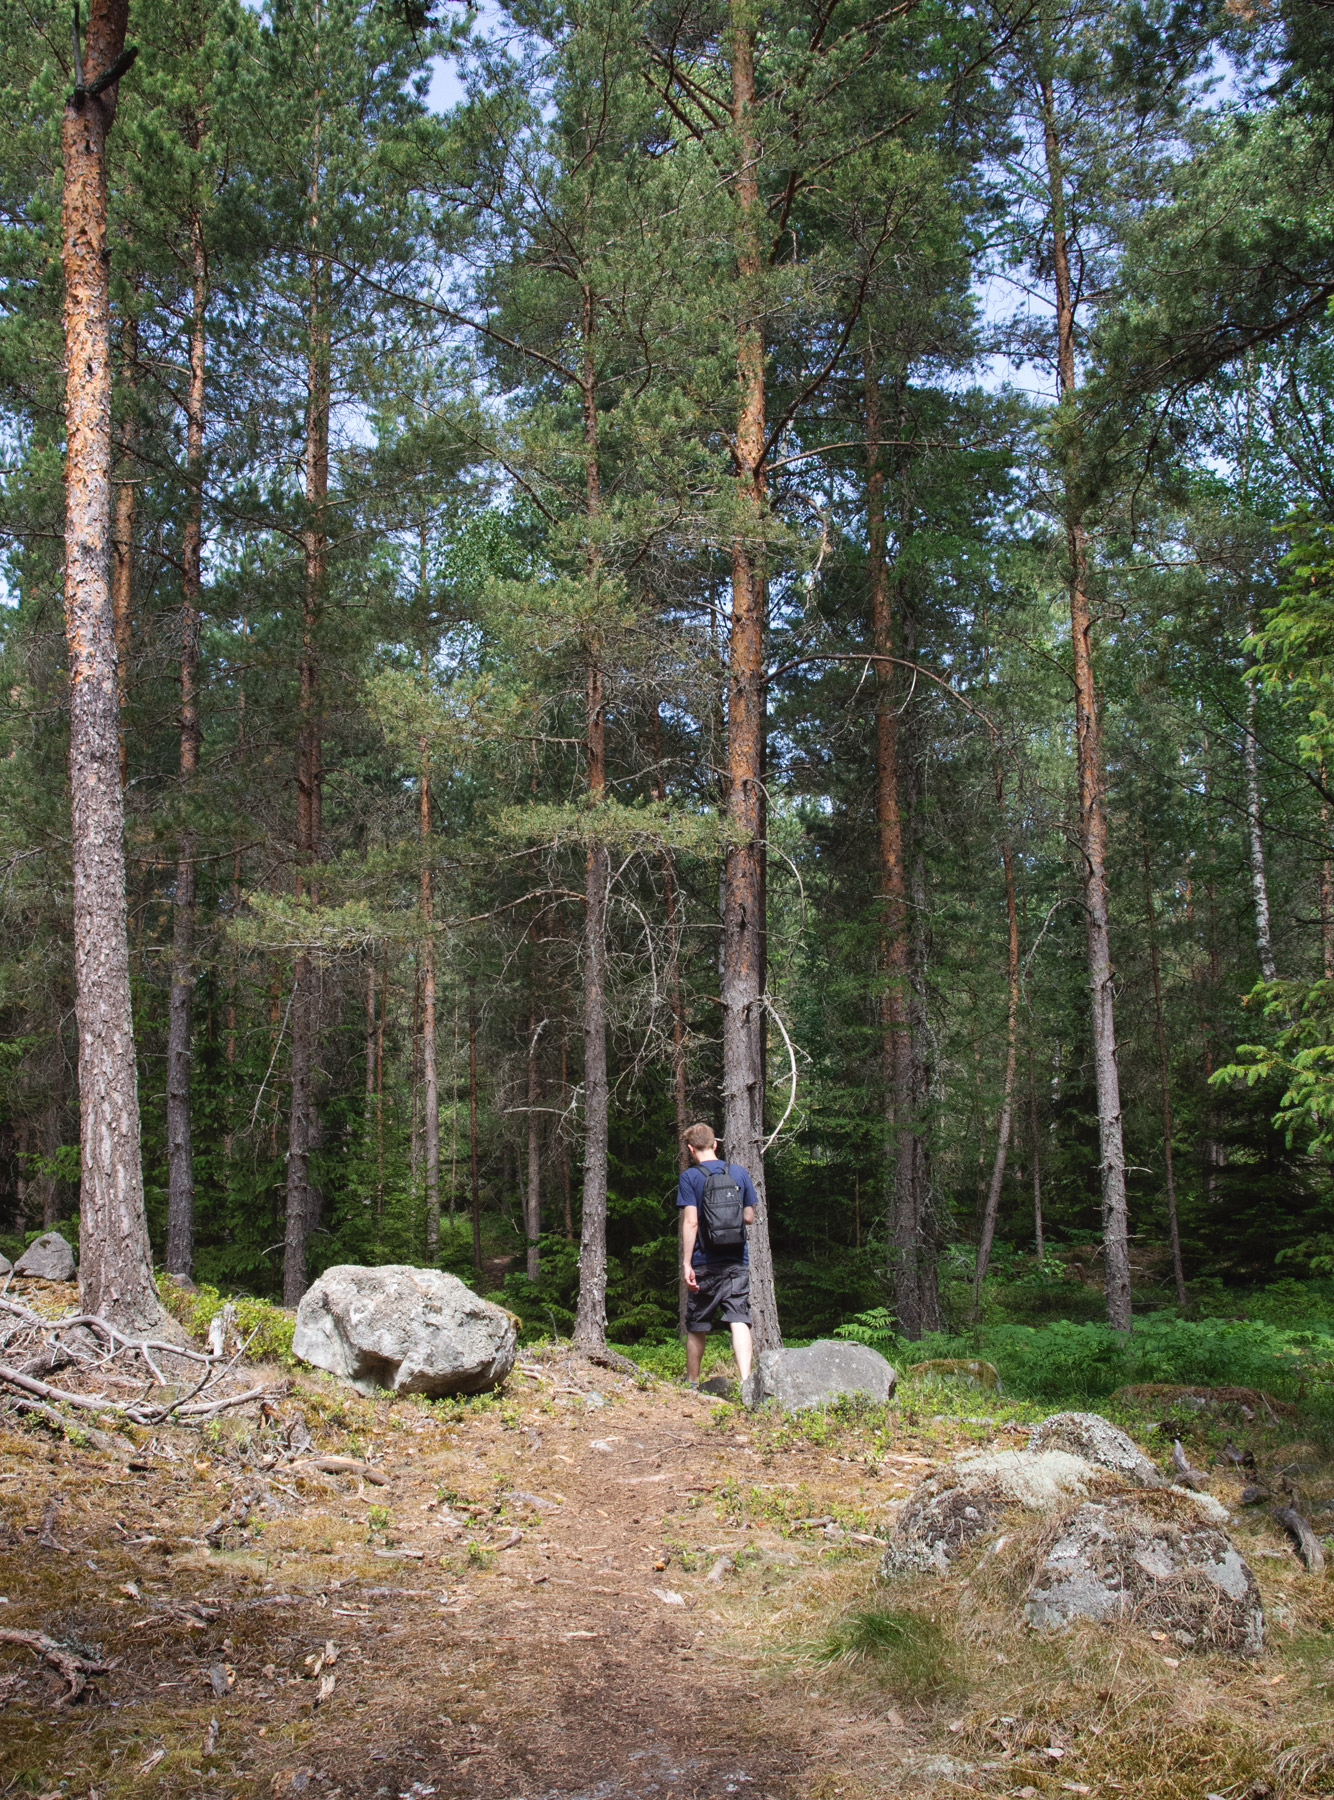 Man walking in tall trees